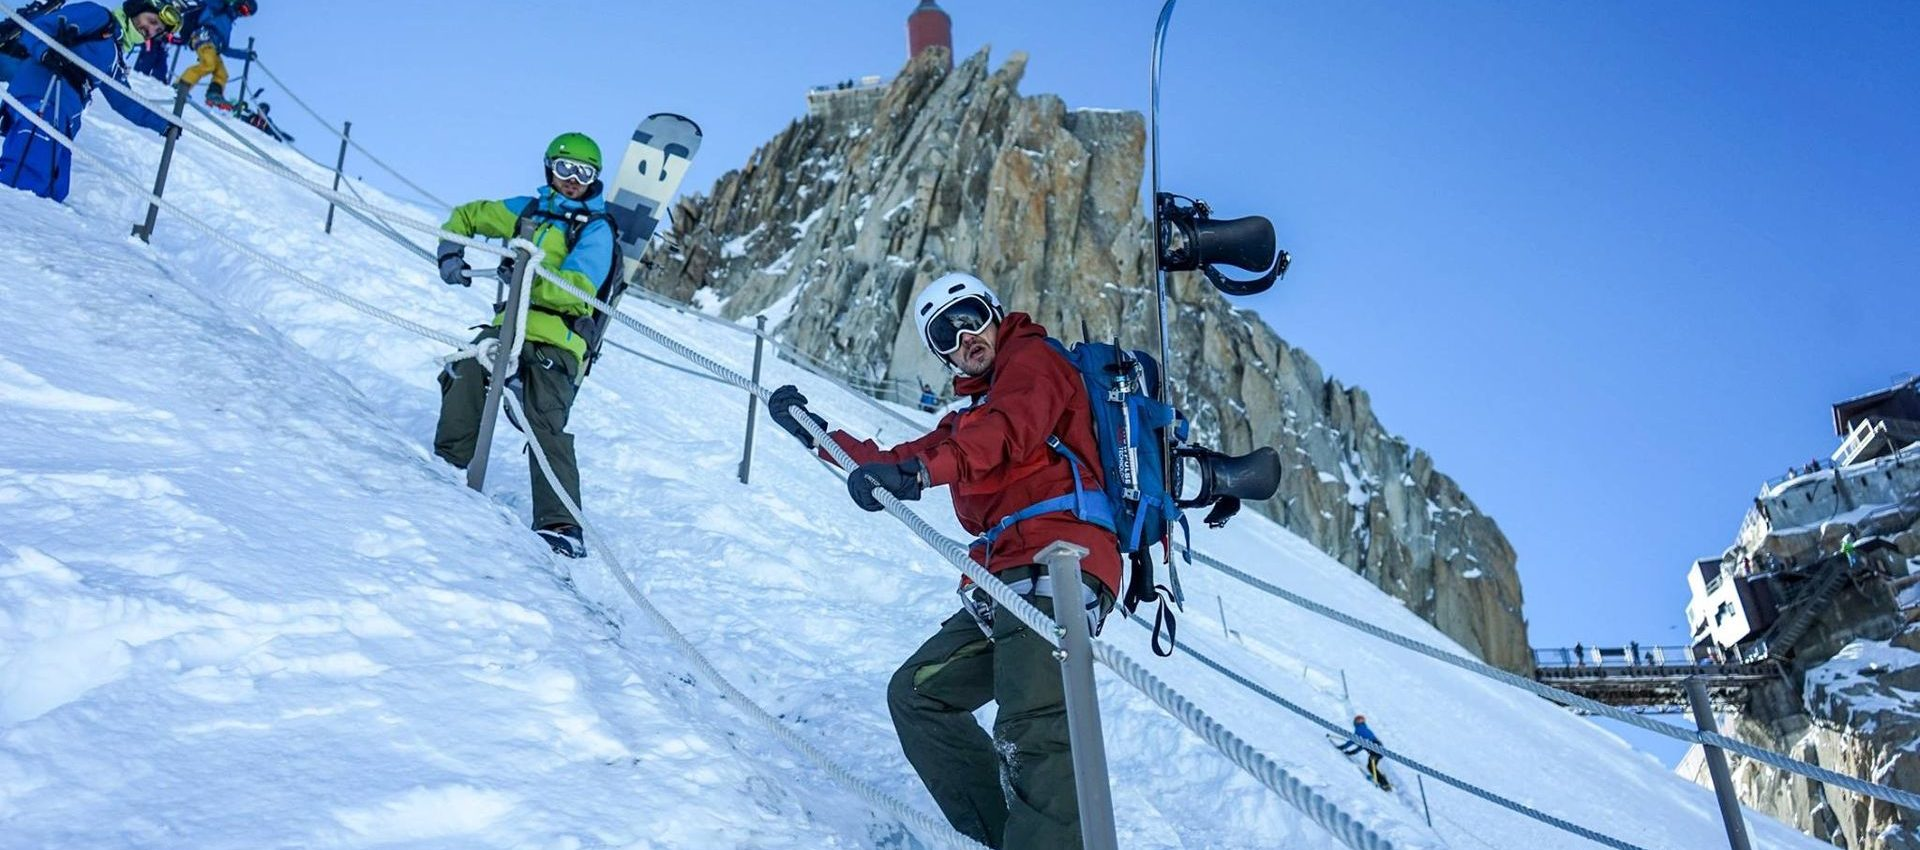 The ride down from Aiguille du Midi starts at 3842m and ends in Chamonix at 1050m.